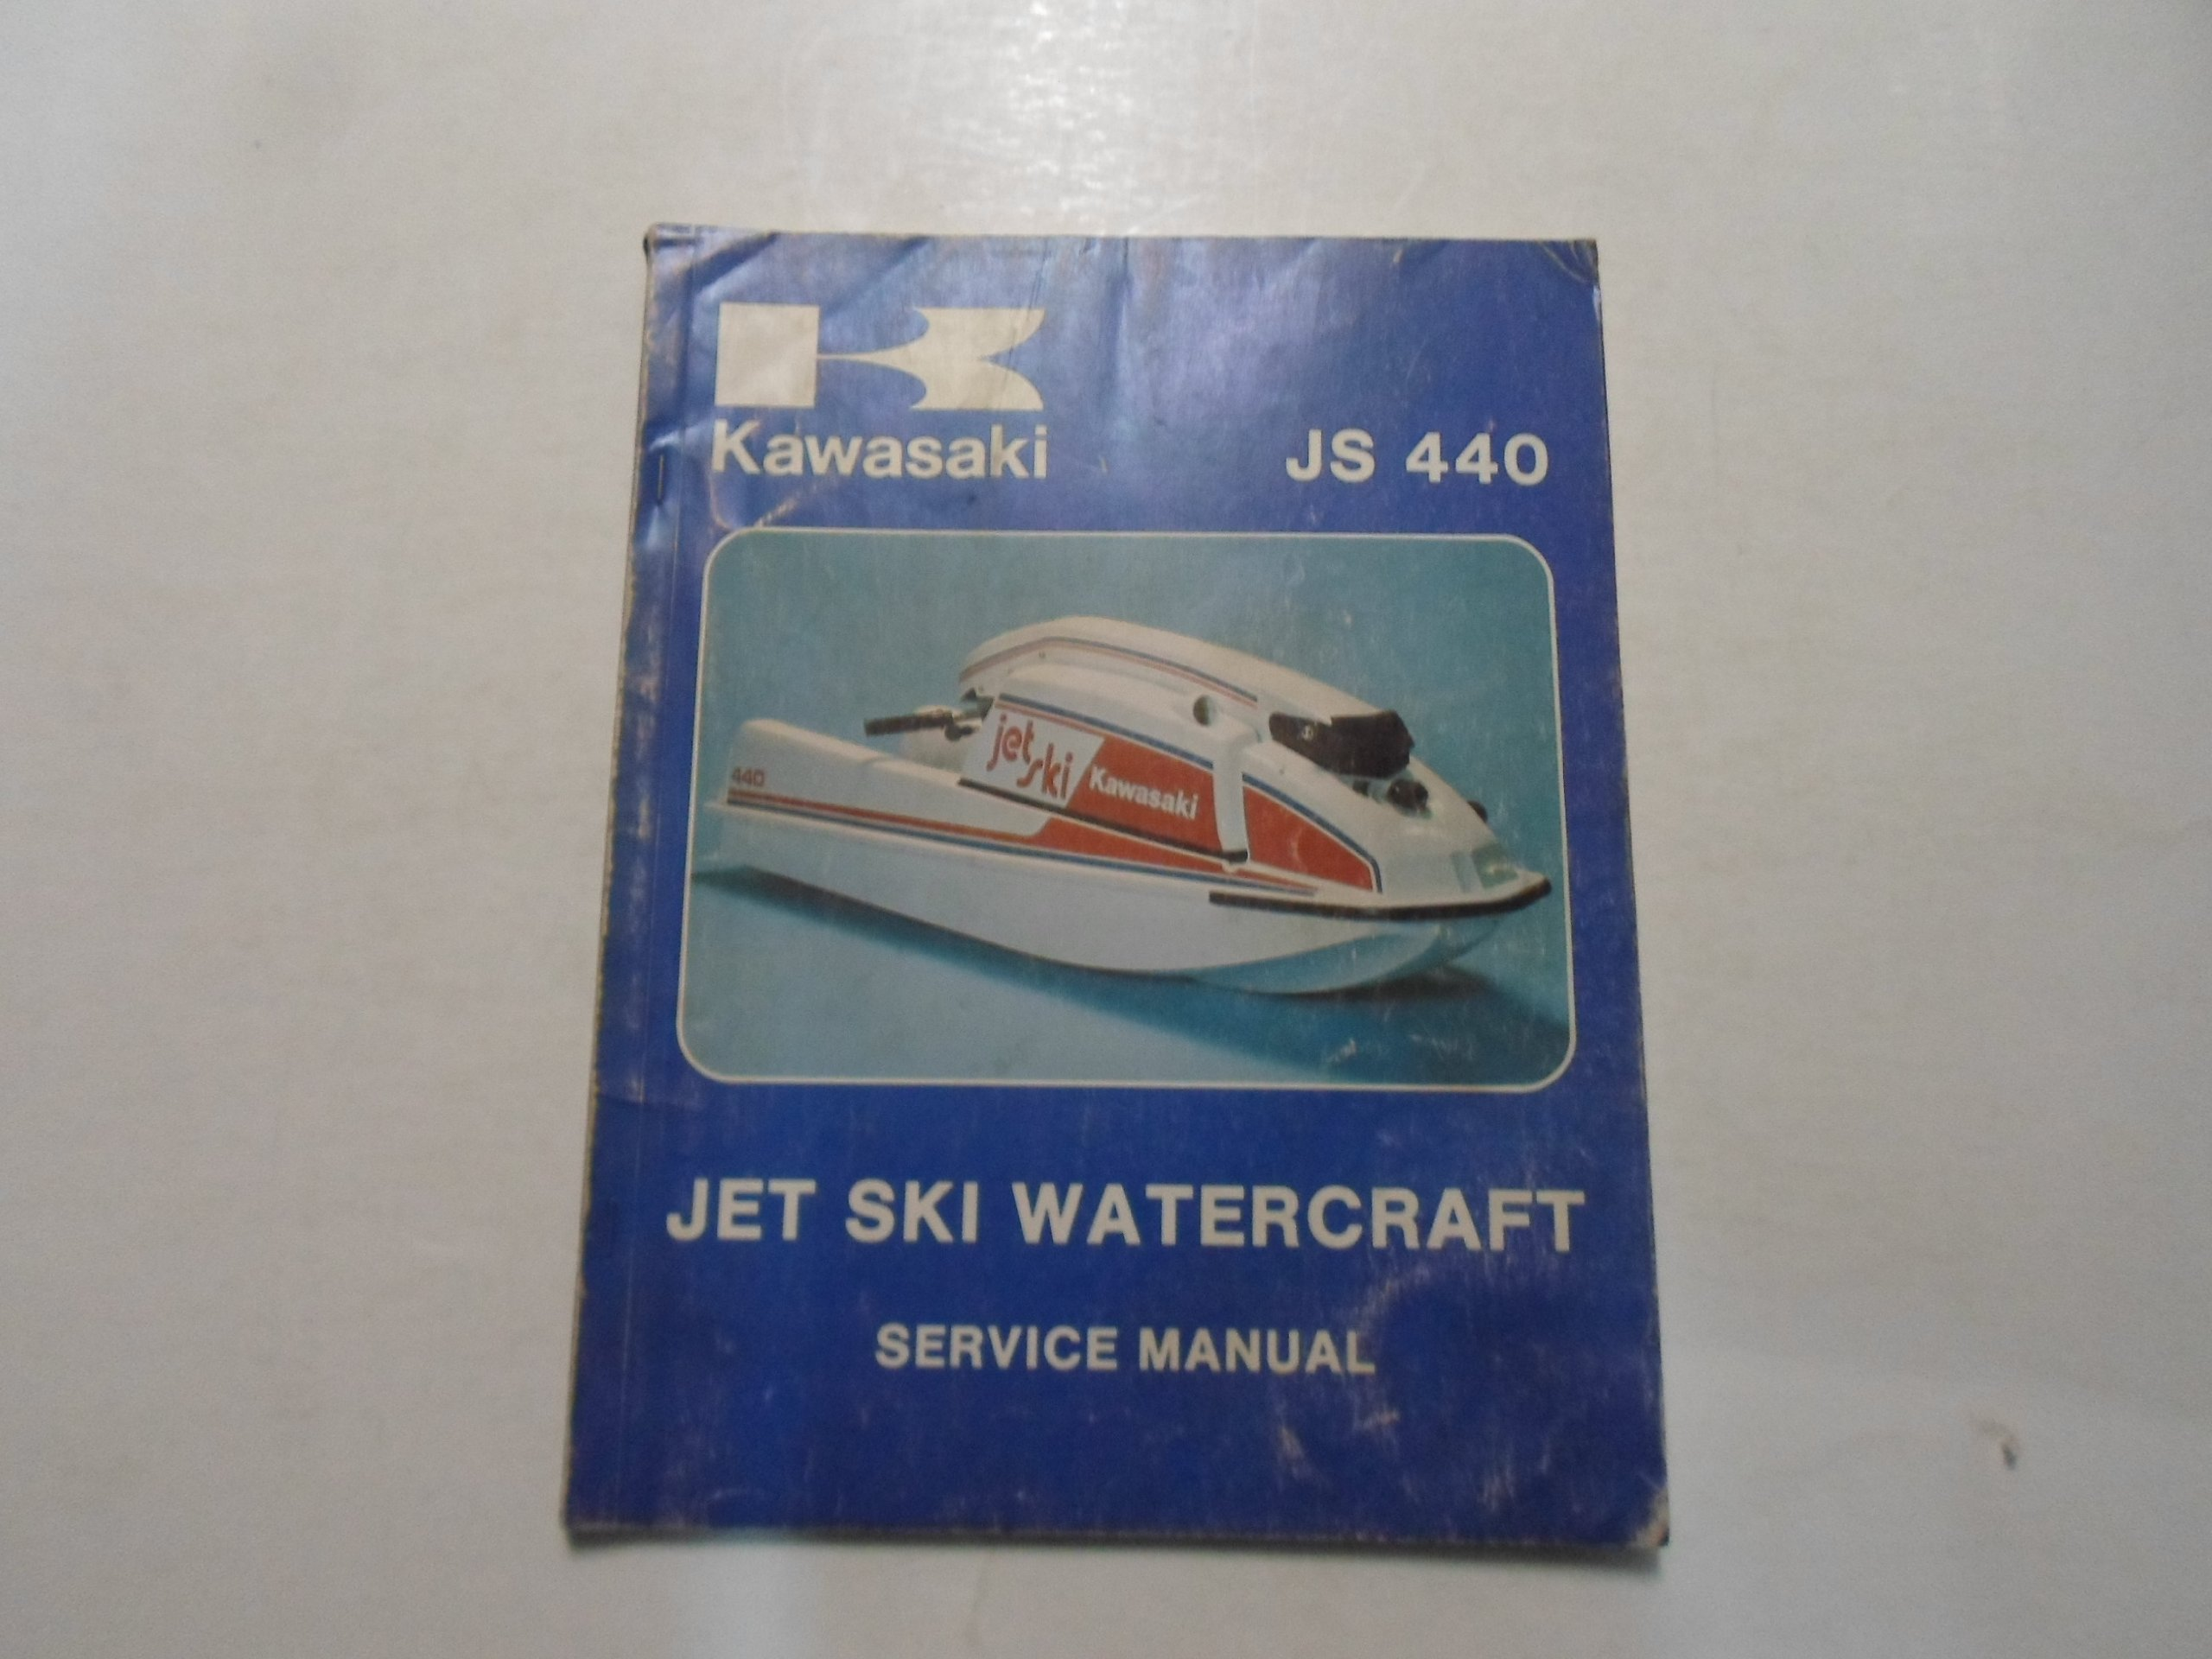 1977 1978 Kawasaki Jet Ski Watercraft JS 440 Service Repair Manual WATER  DAMAGED: KAWASAKI: Amazon.com: Books